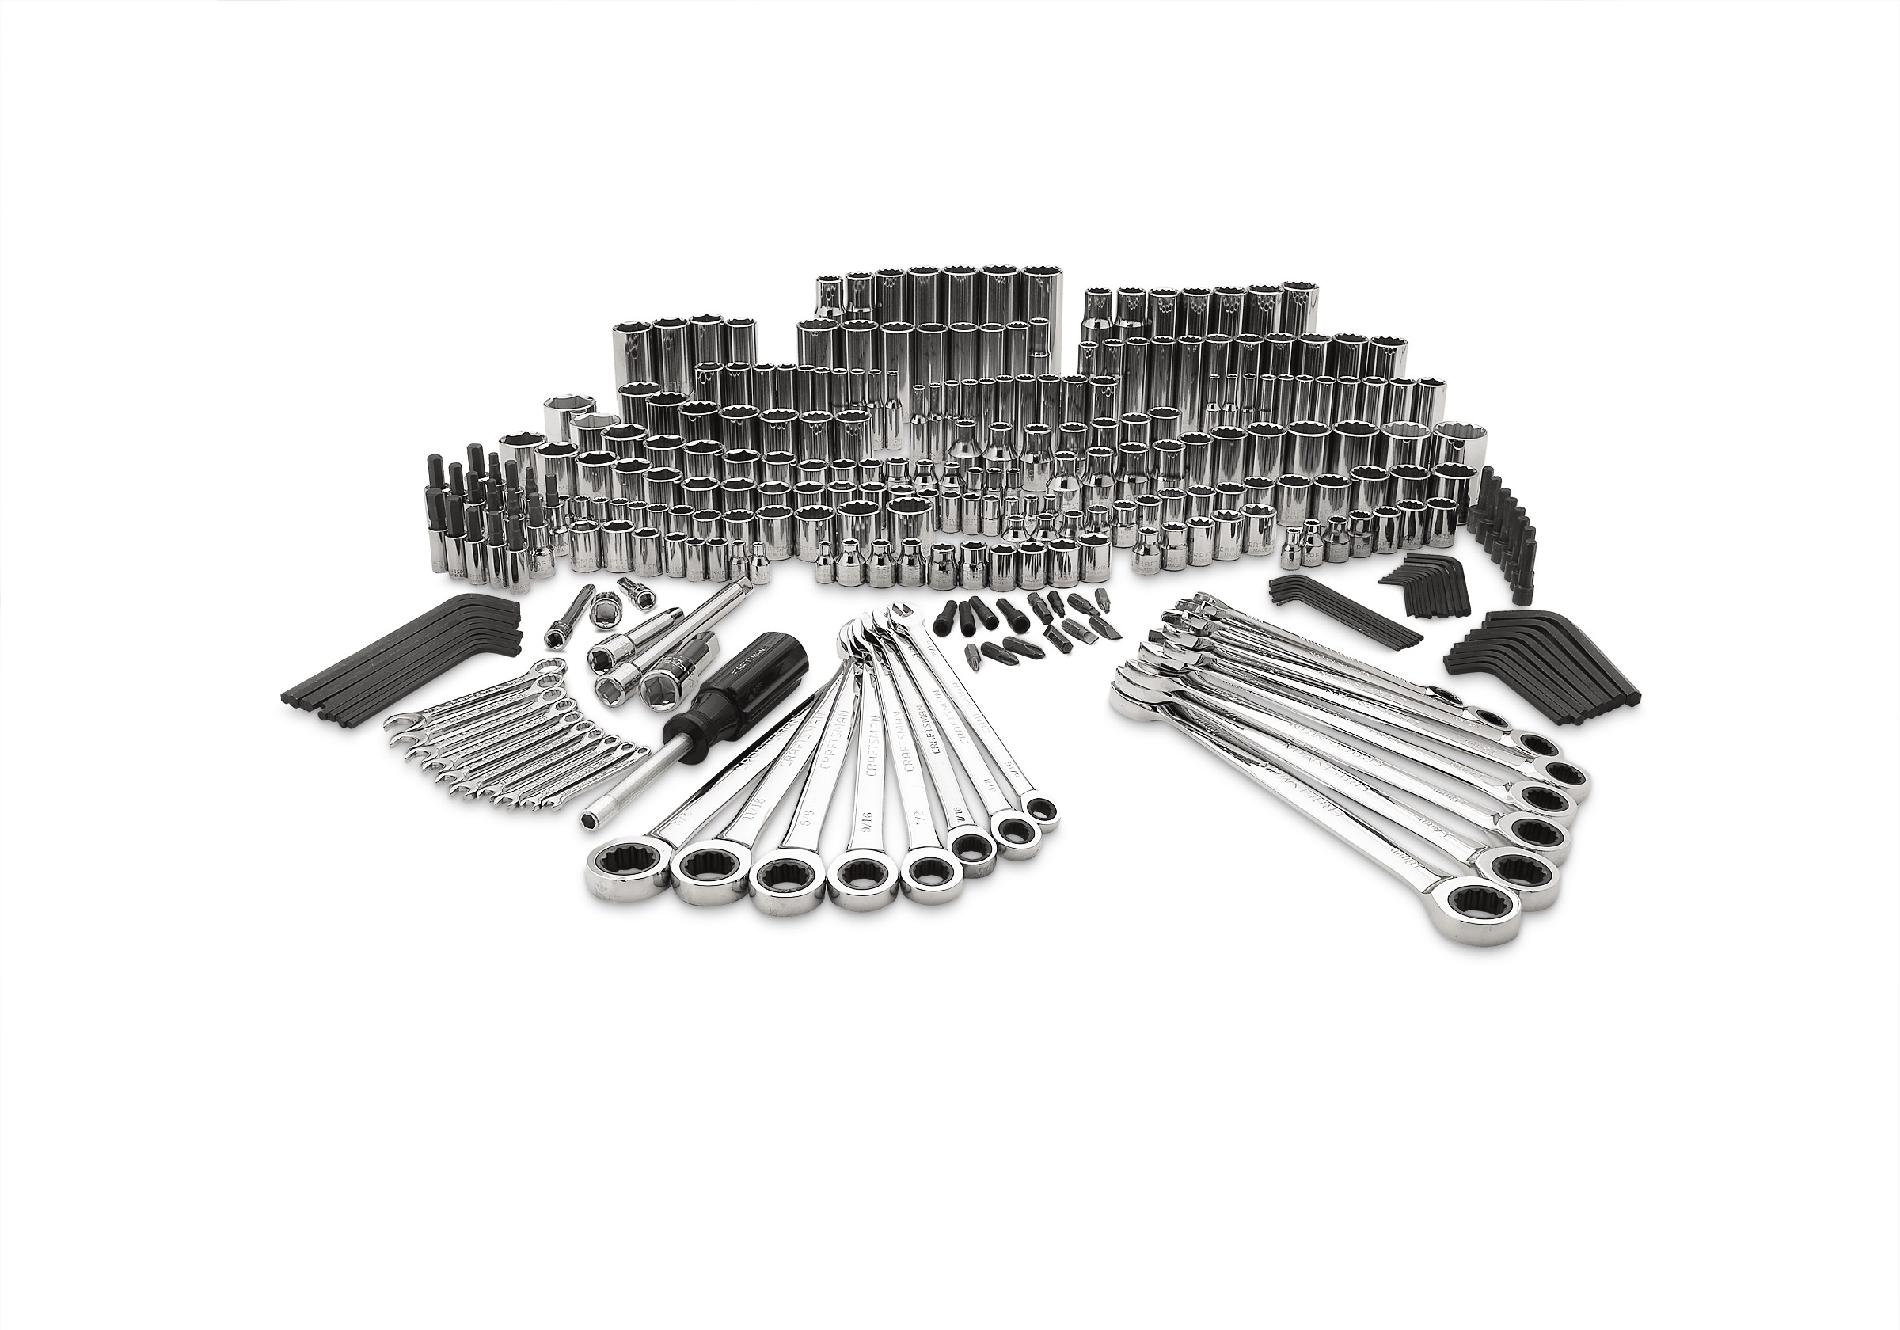 Craftsman 309-Piece Mechanics Tool Set